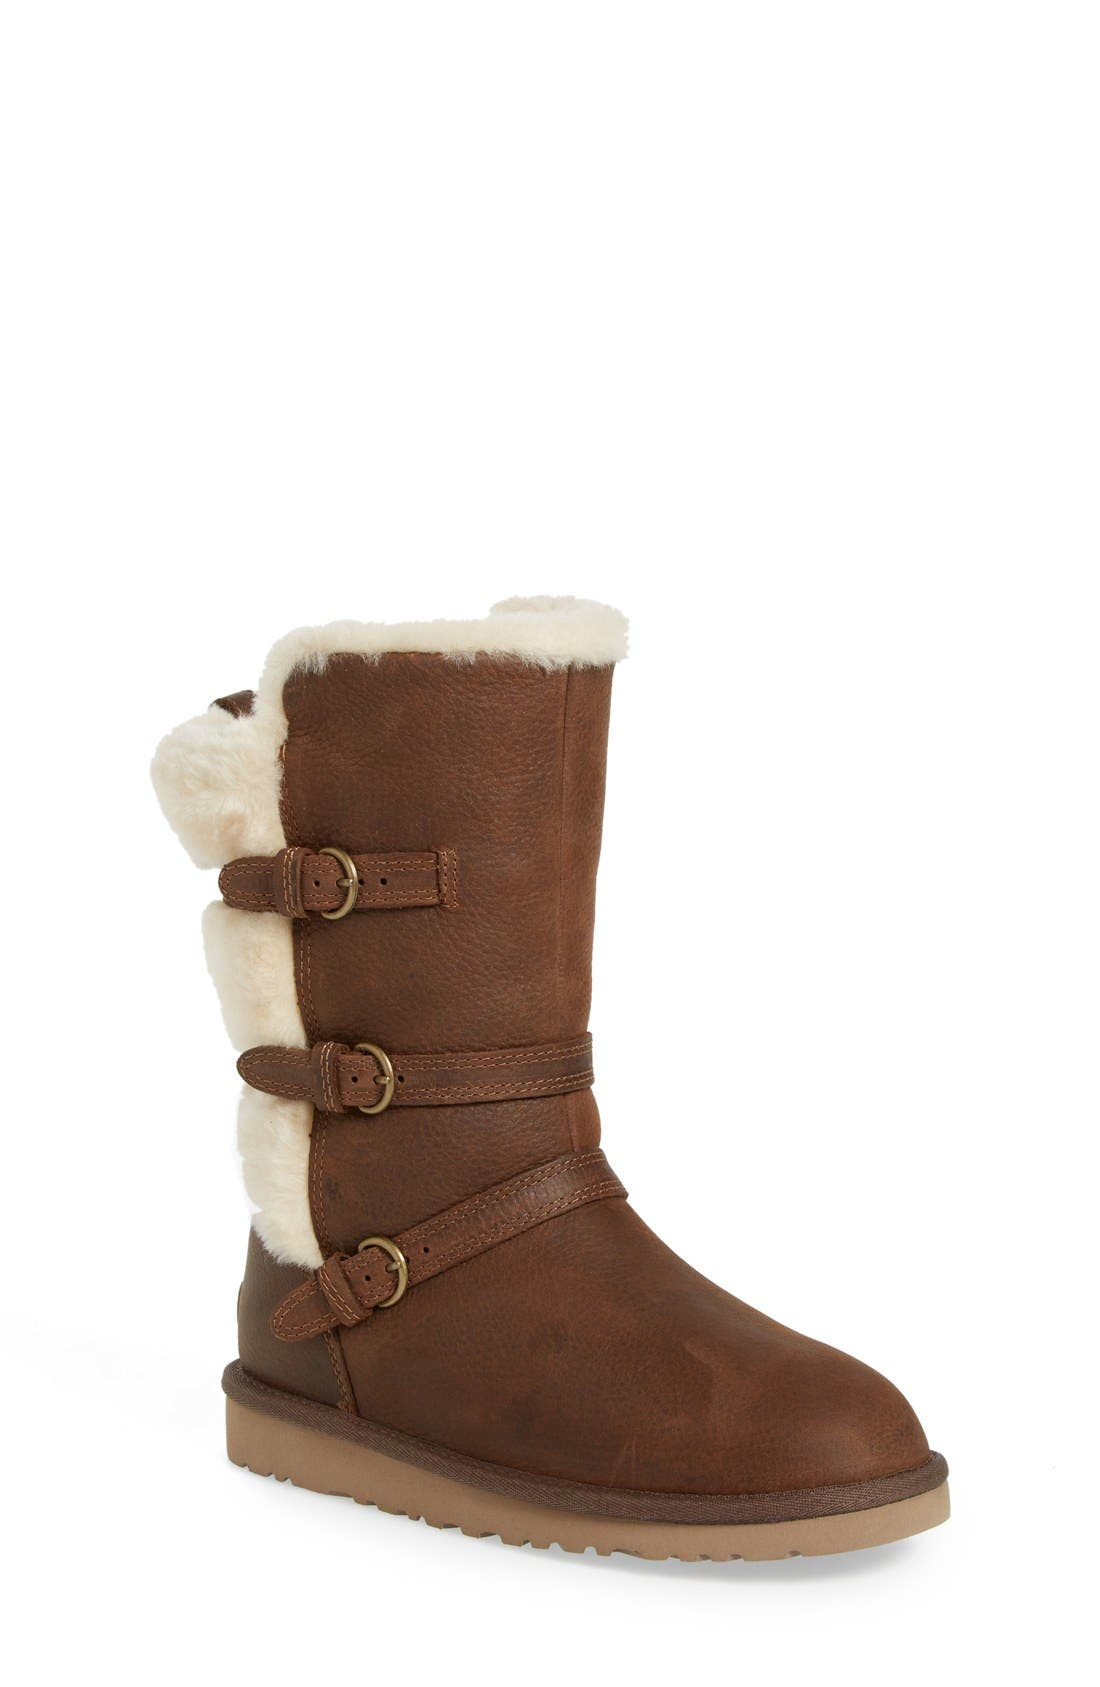 Main Image - UGG® Glasgow Water Resistant Boot (Toddler, Little Kid & Big Kid)